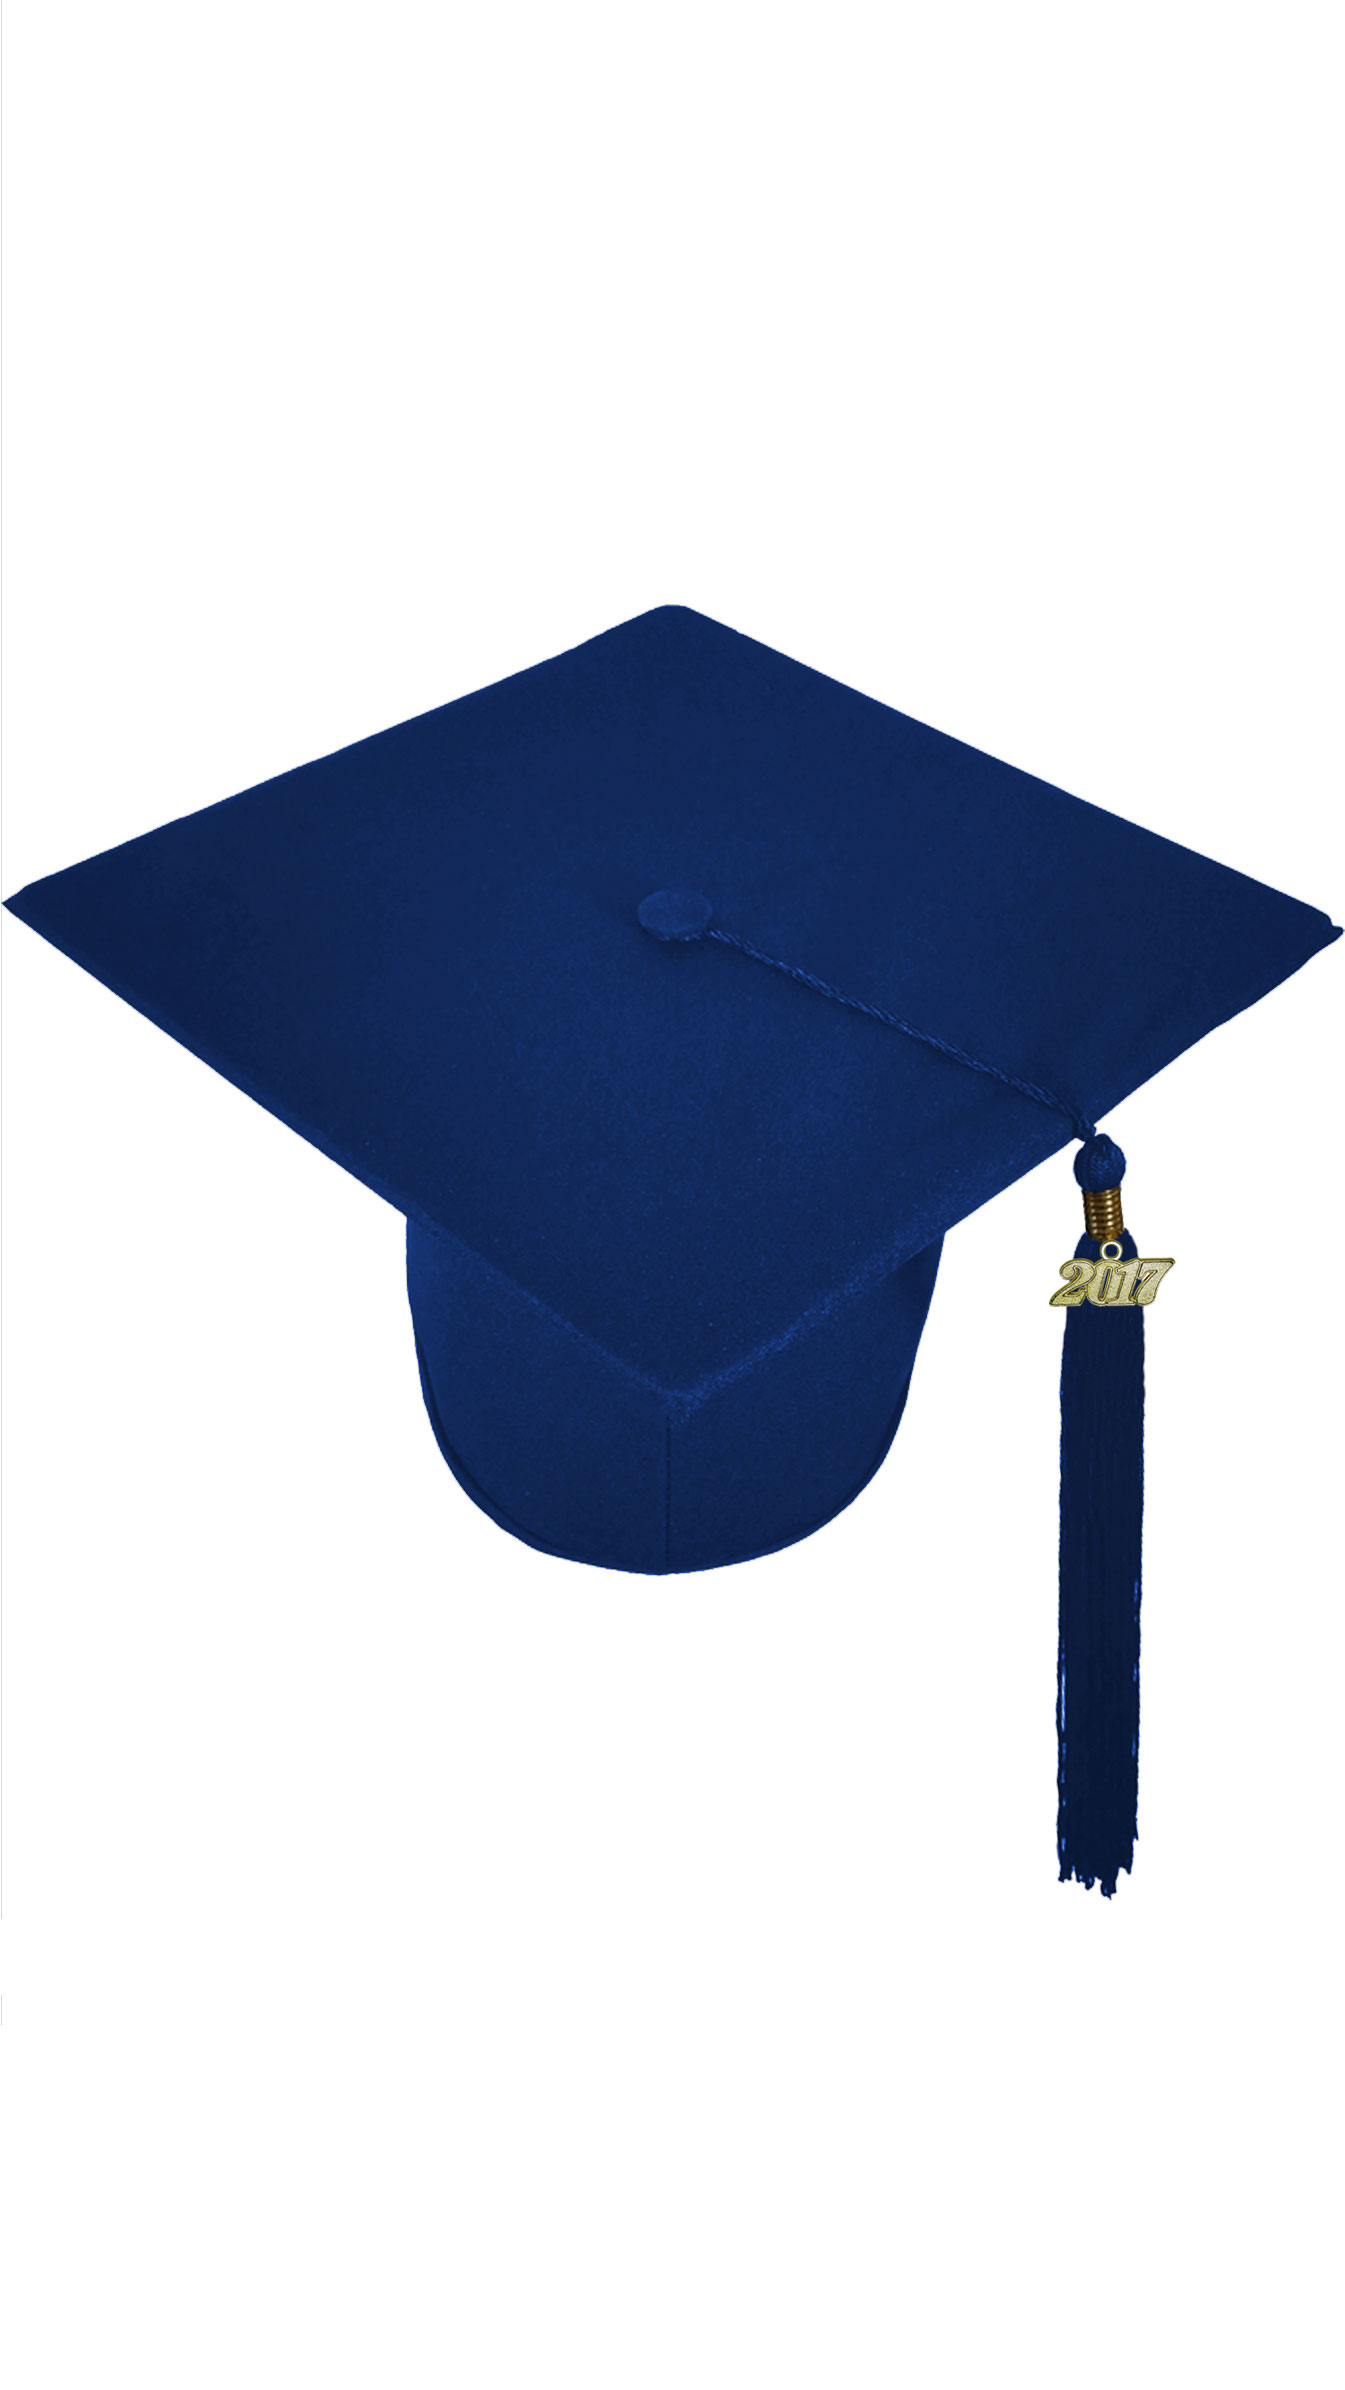 MATTE NAVY BLUE CAP, GOWN, GRADUATION BEAR SET-rs4251465613540